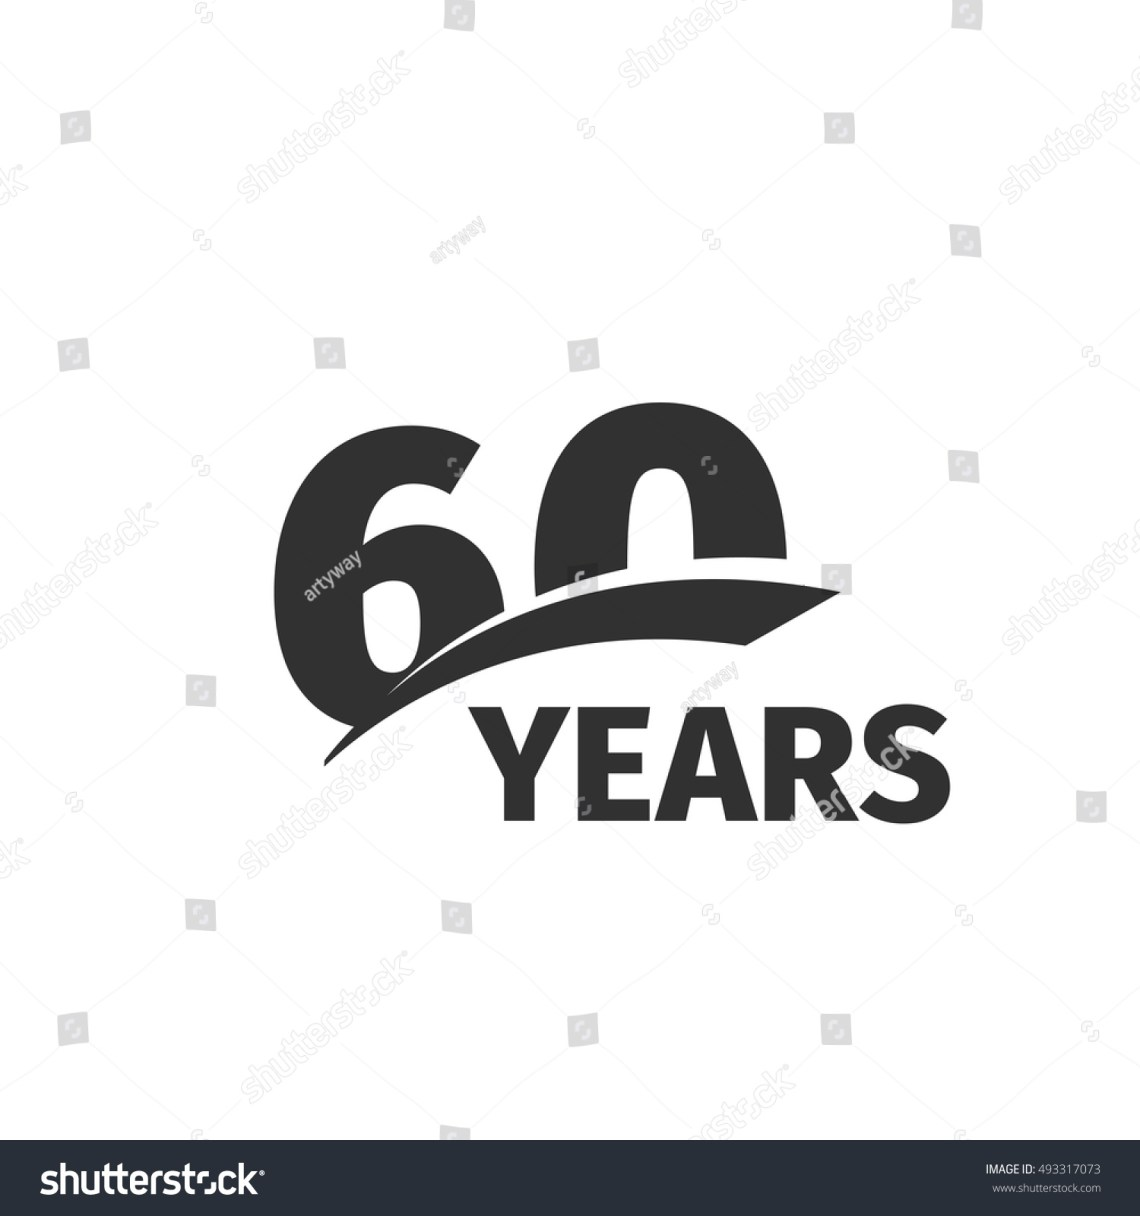 Download Isolated Abstract Black 60th Anniversary Logo Stock Vector ...